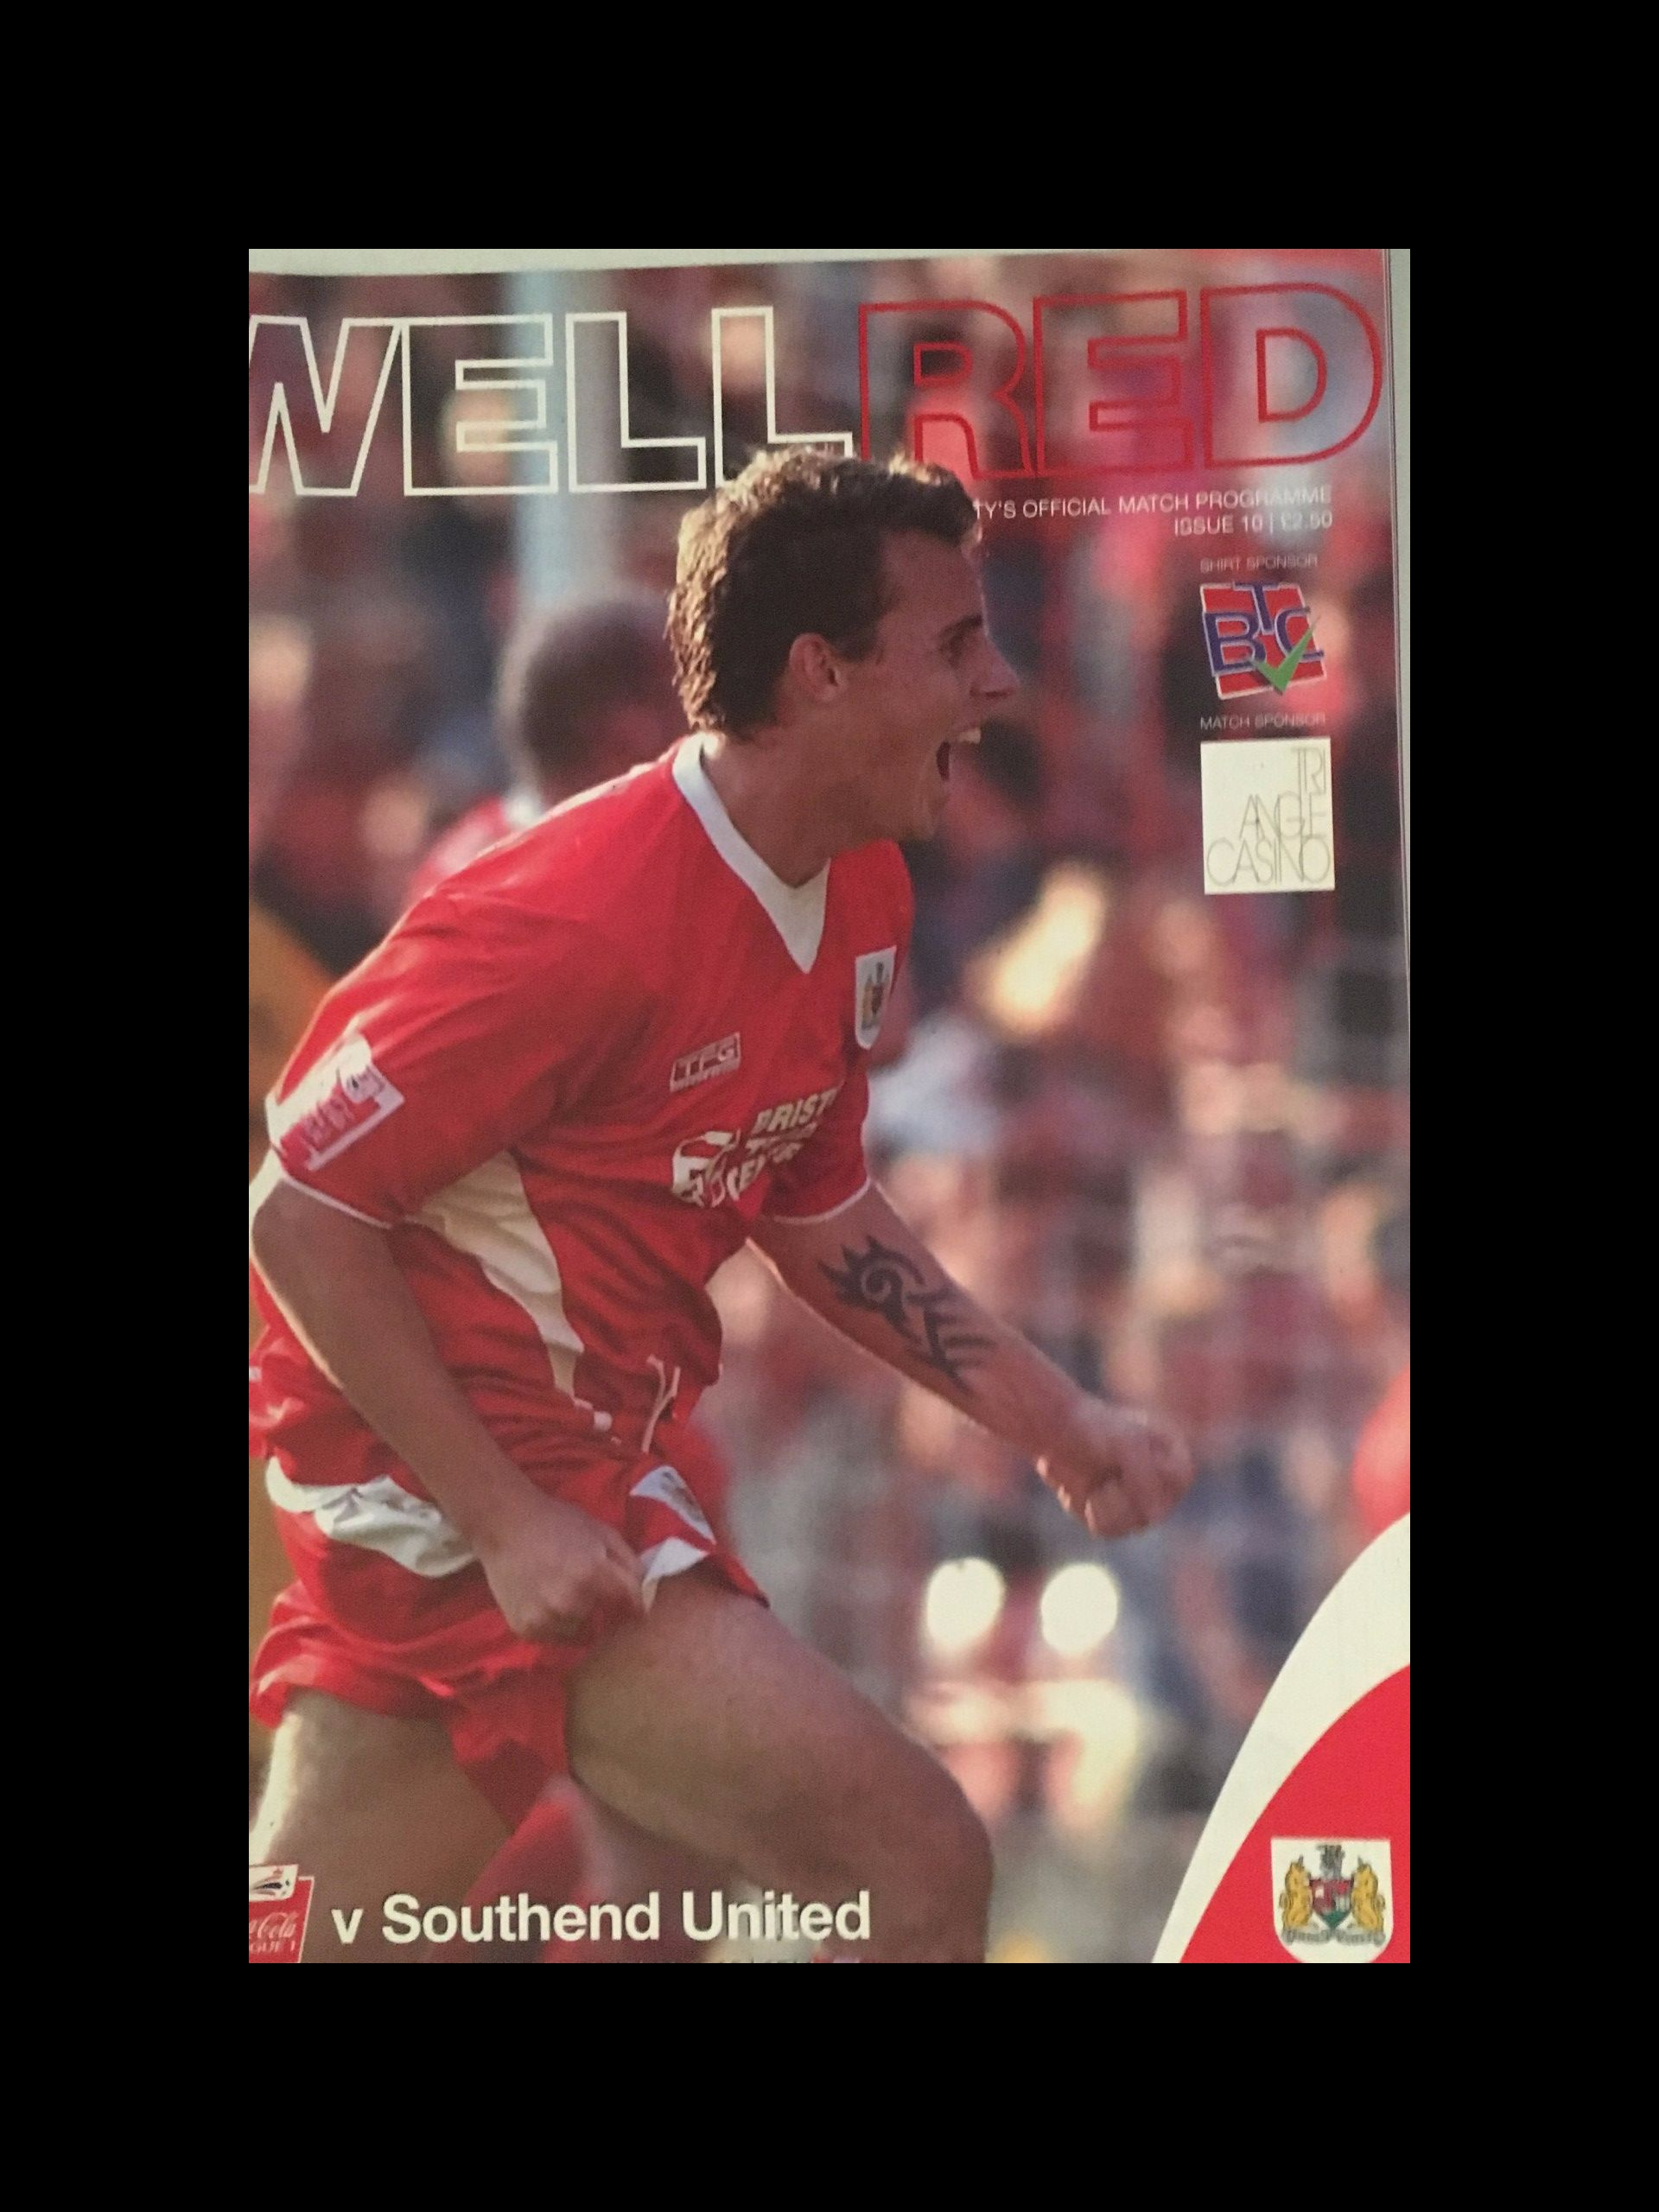 Bristol City v Southend United 29-10-2005 Programme